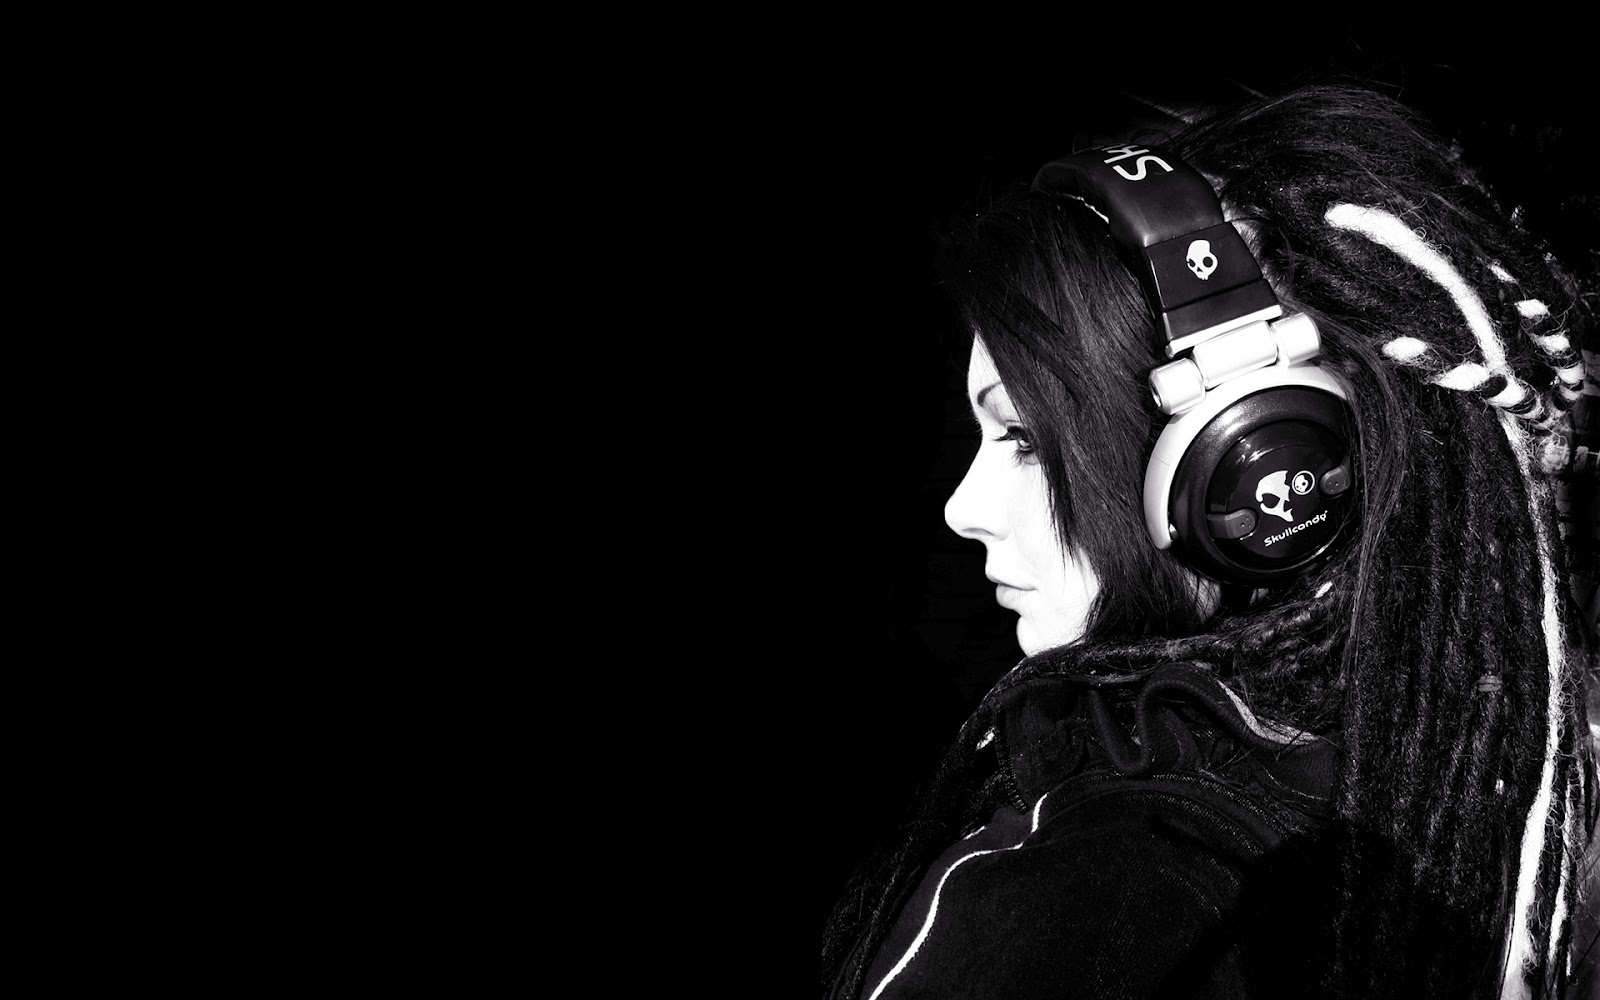 Wallpaper Girl in headphones on a black background